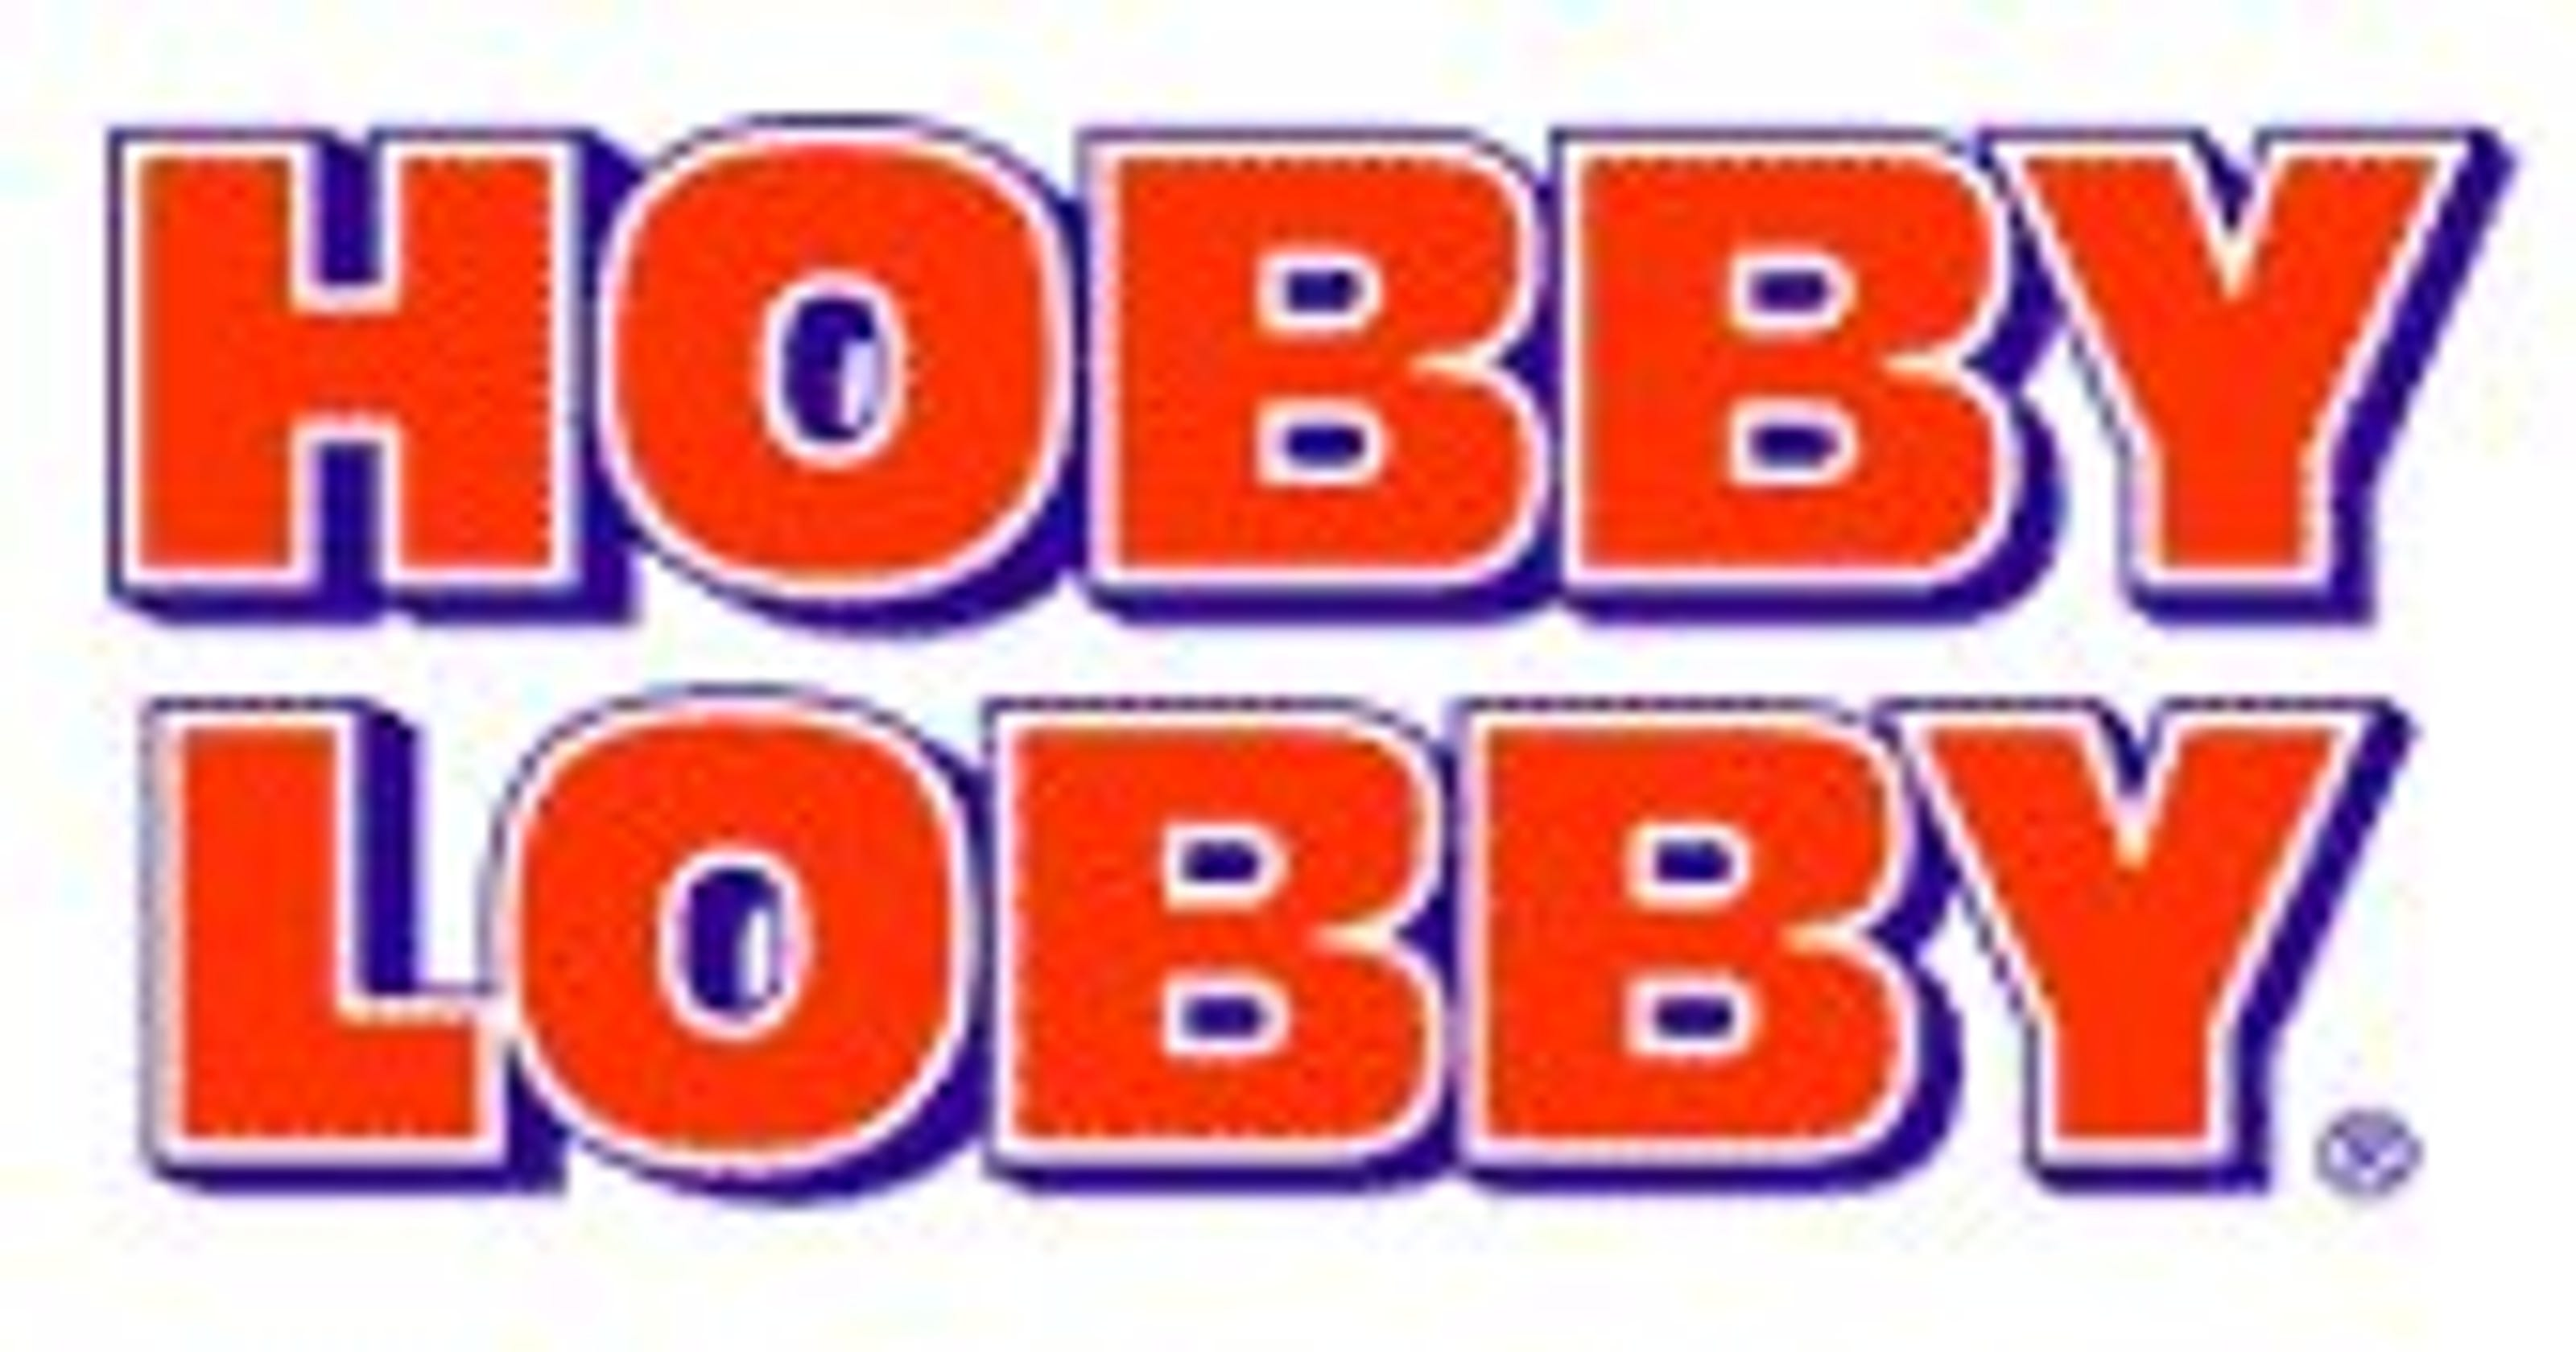 Hobby Lobby set to open in Bossier City